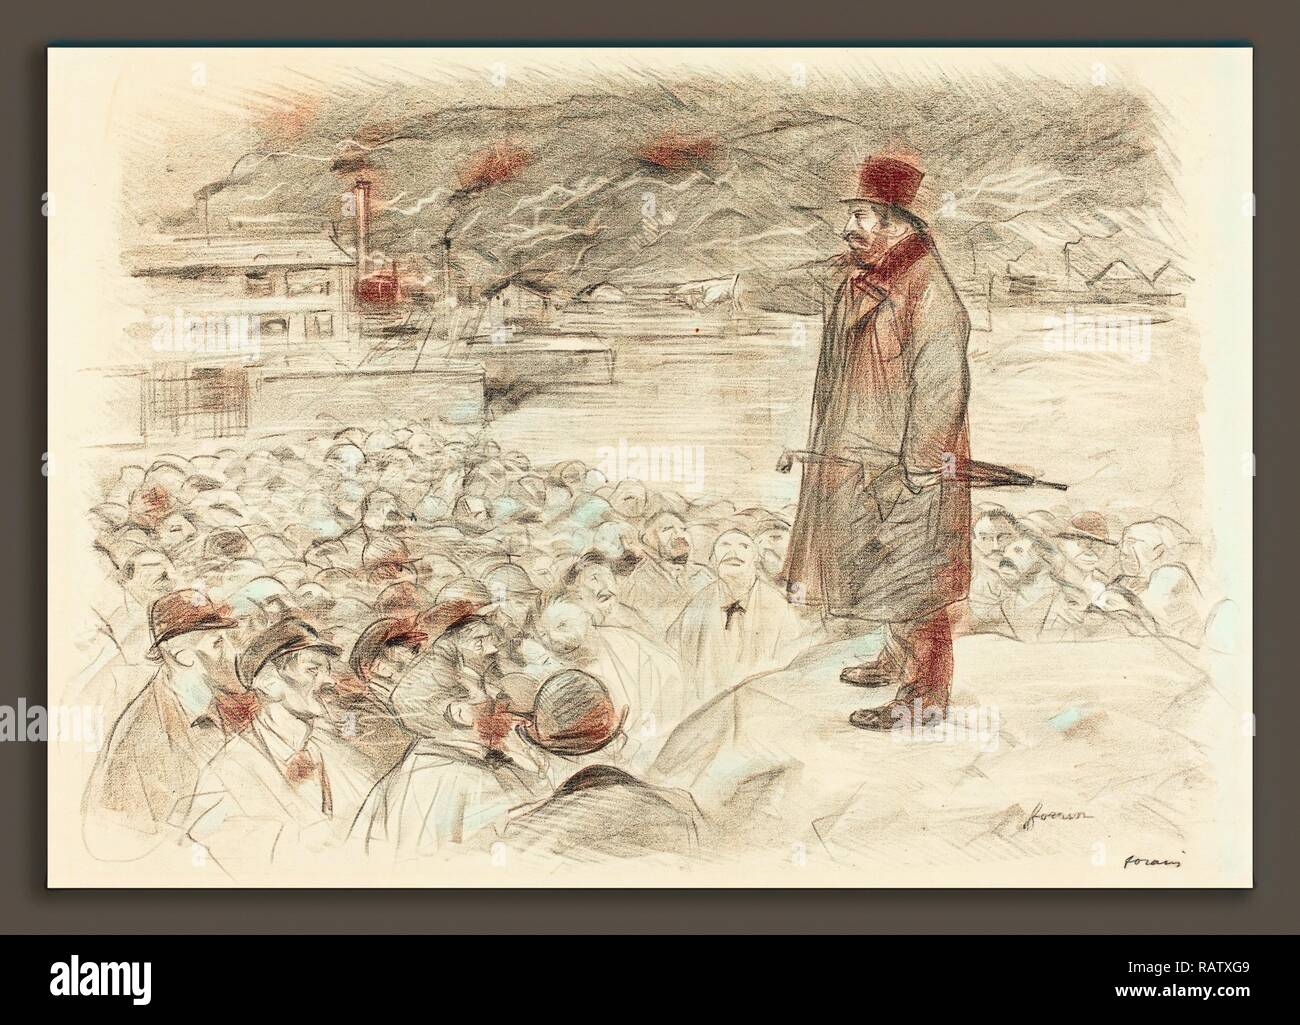 Jean-Louis Forain (French, 1852 - 1931), Scene of a Strike (third plate), c. 1897, lithograph. Reimagined - Stock Image